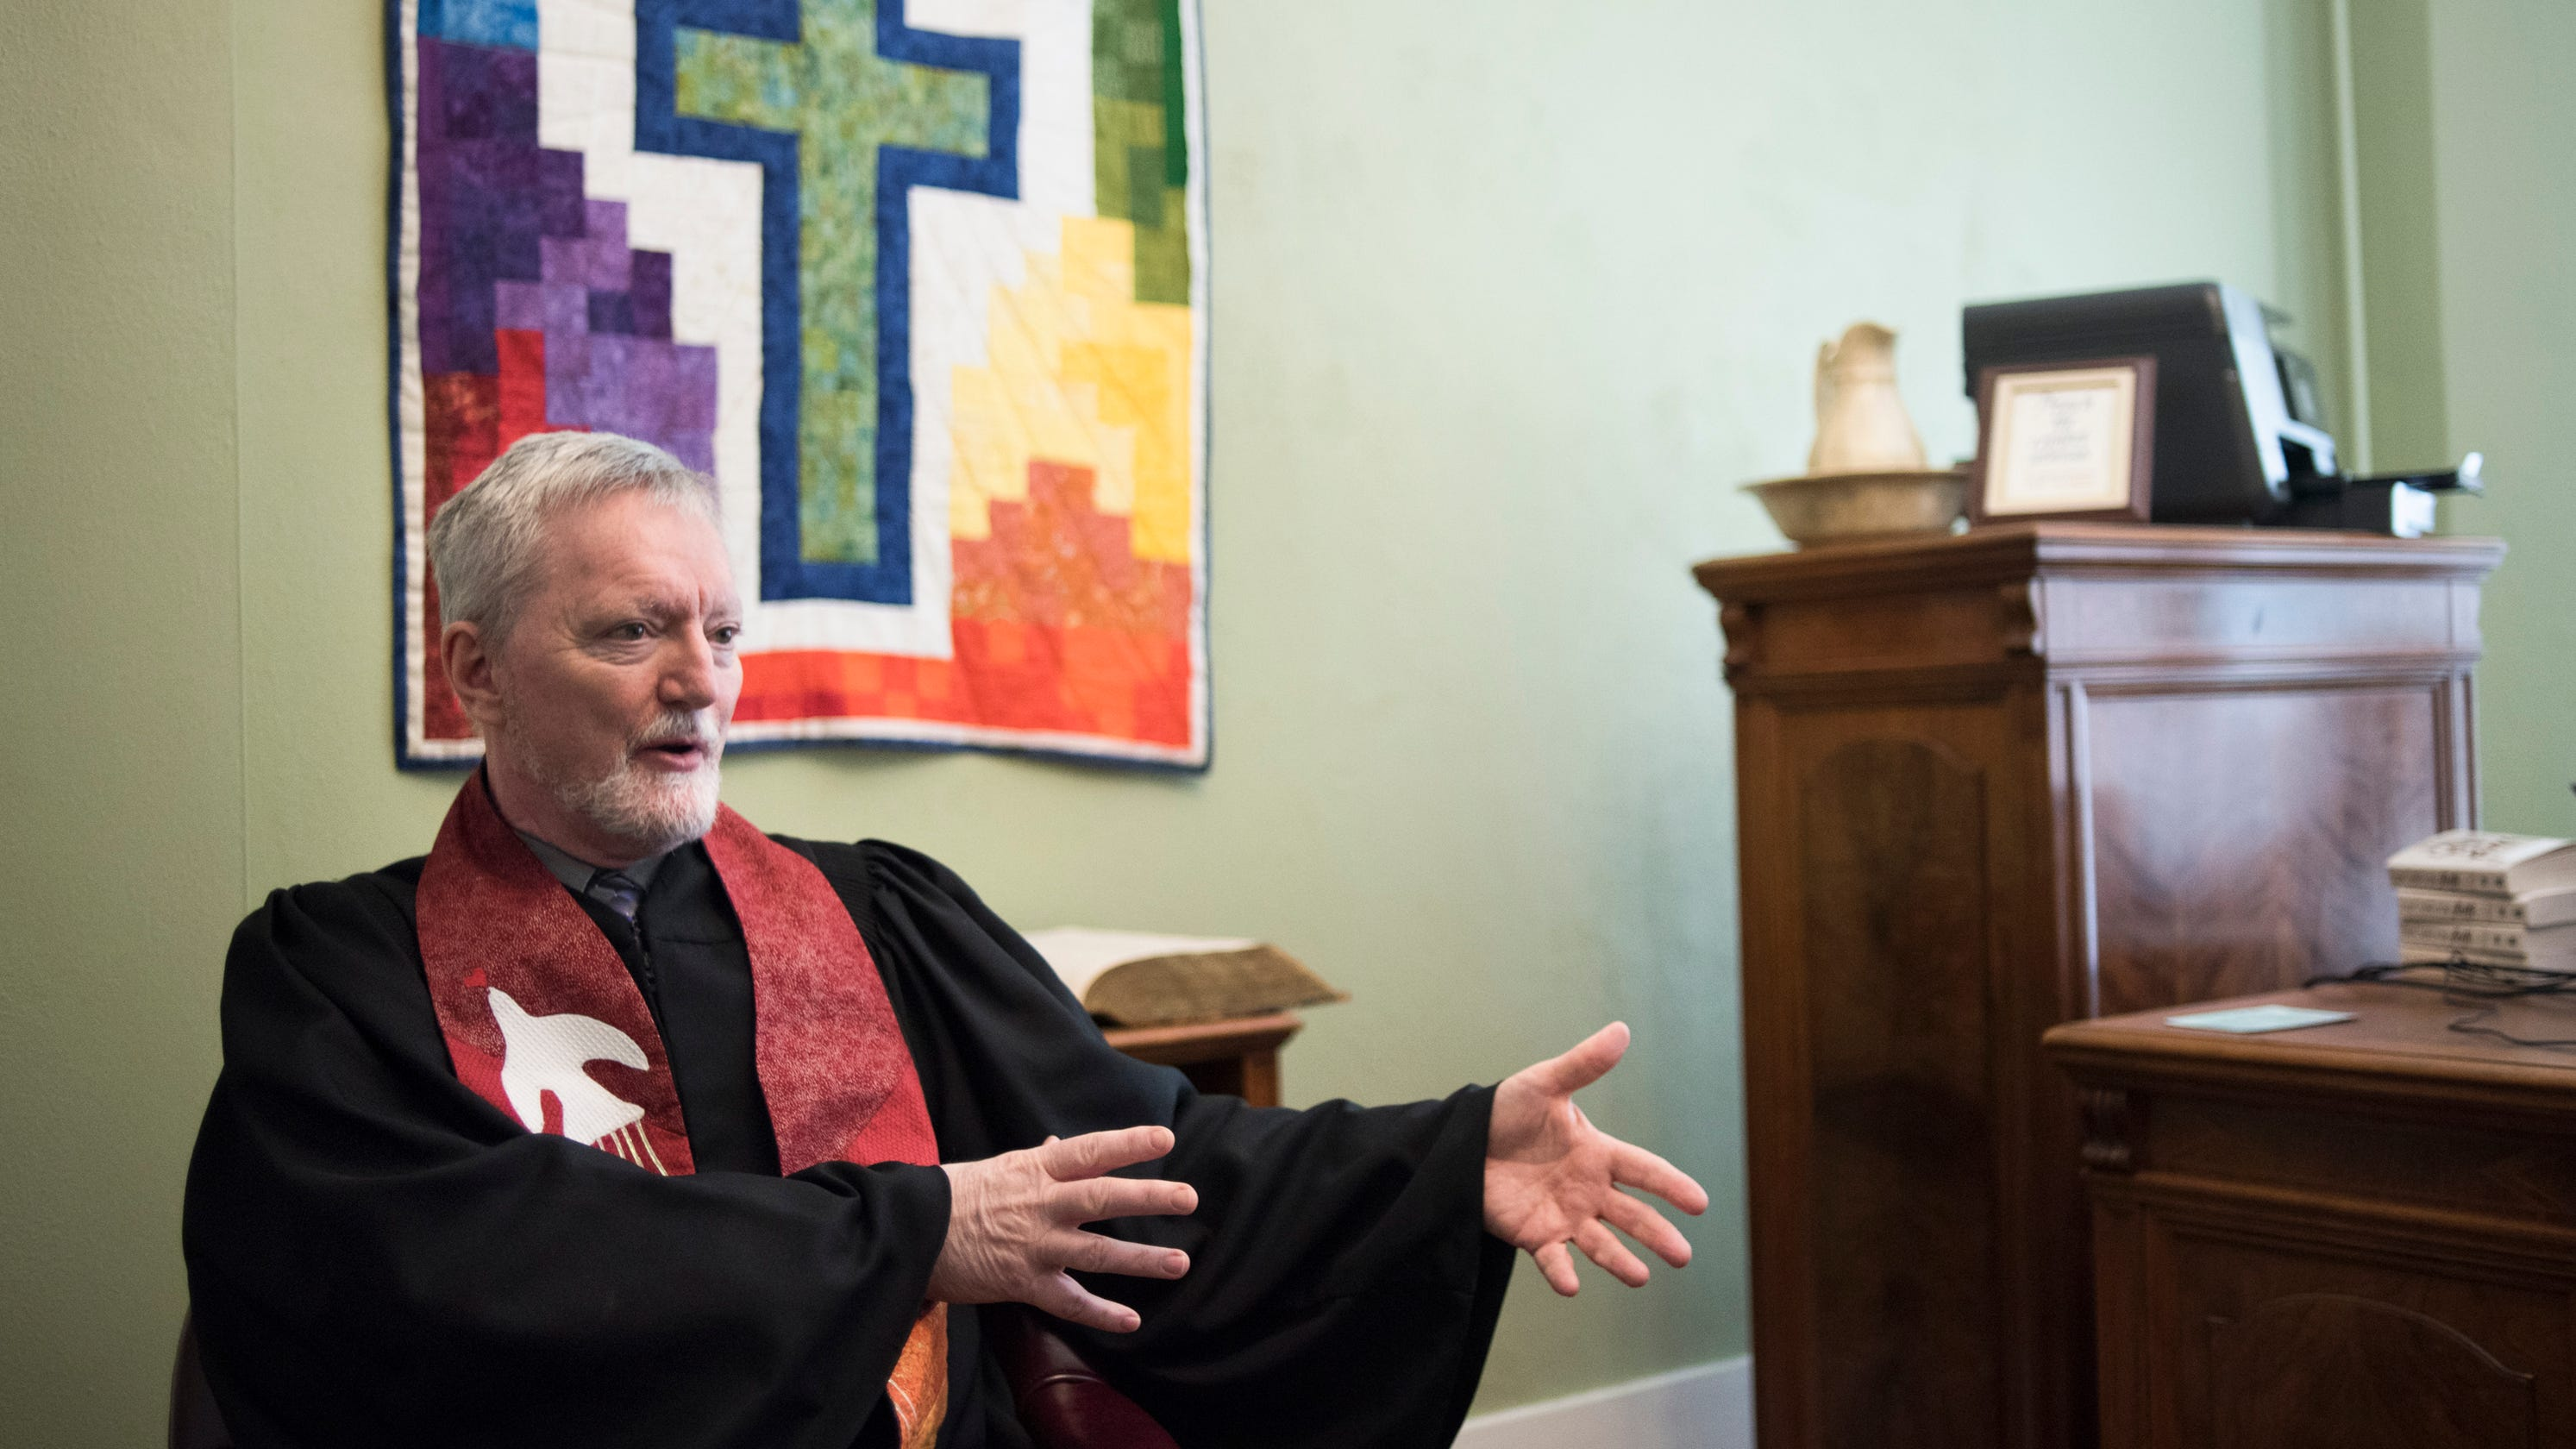 Following United Methodist Churchs Vote Gay Pastor Is Speaking Out